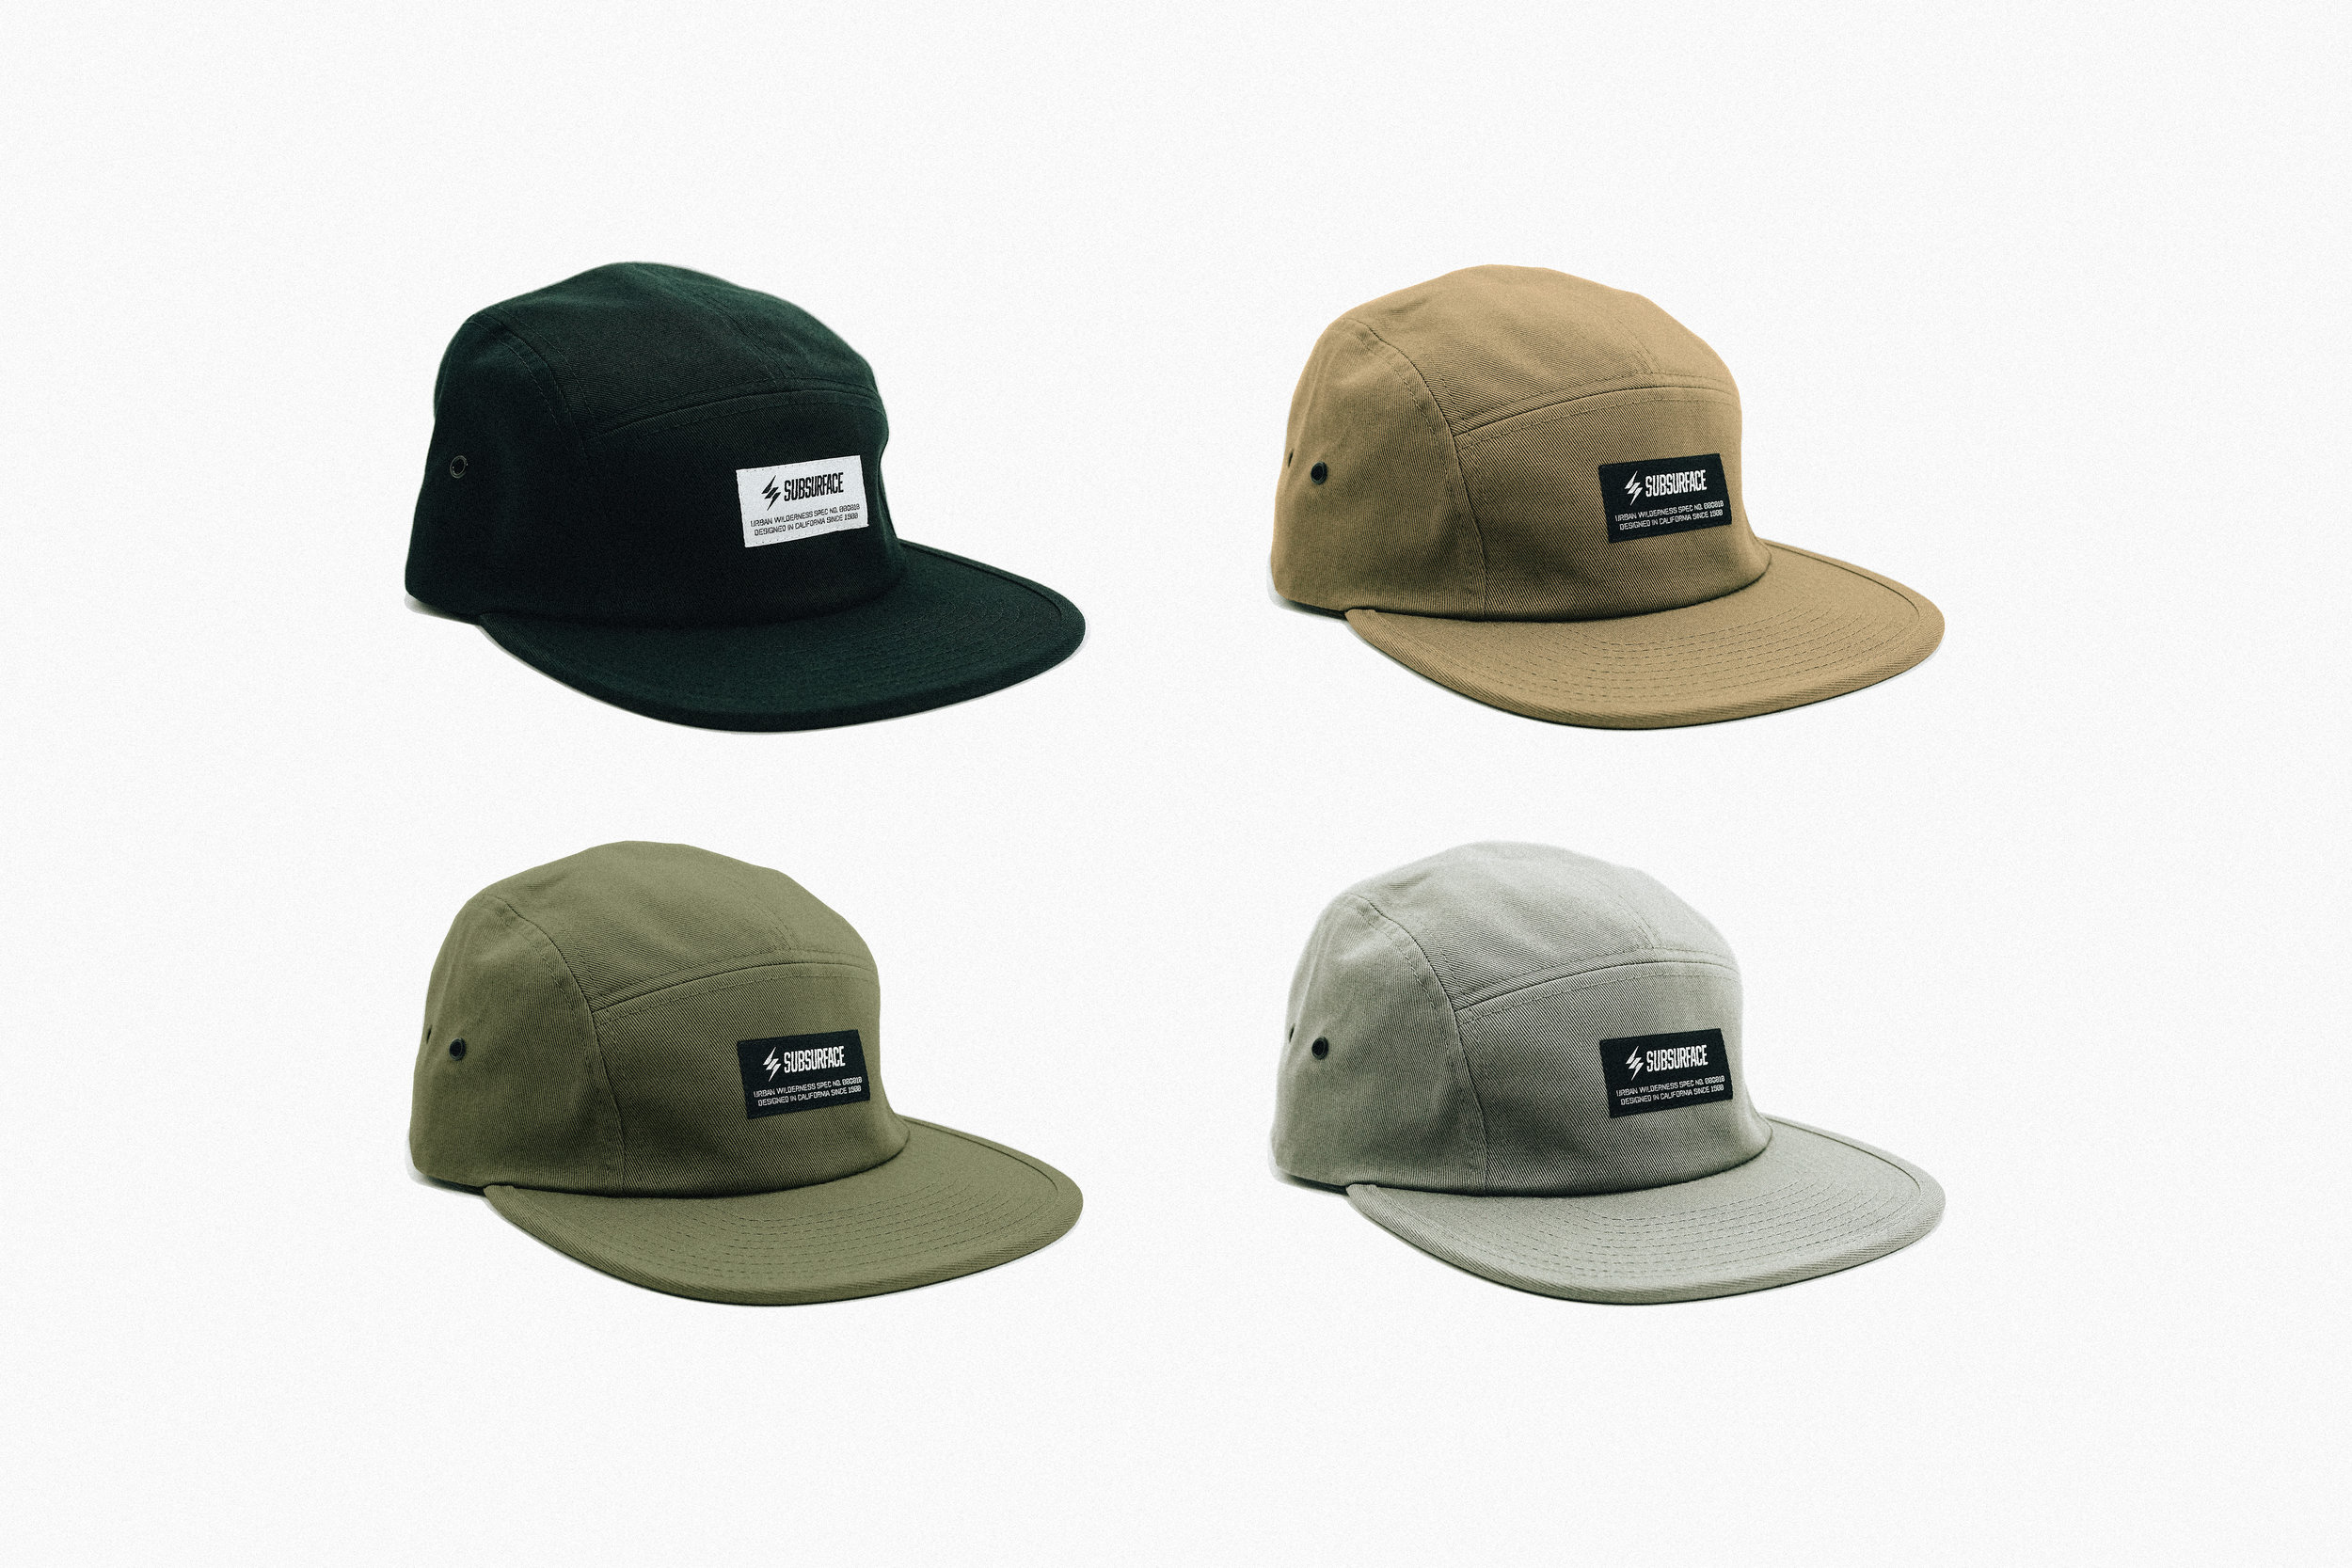 SBSRFC_Headwear_Program_Fall_2019_4.jpg